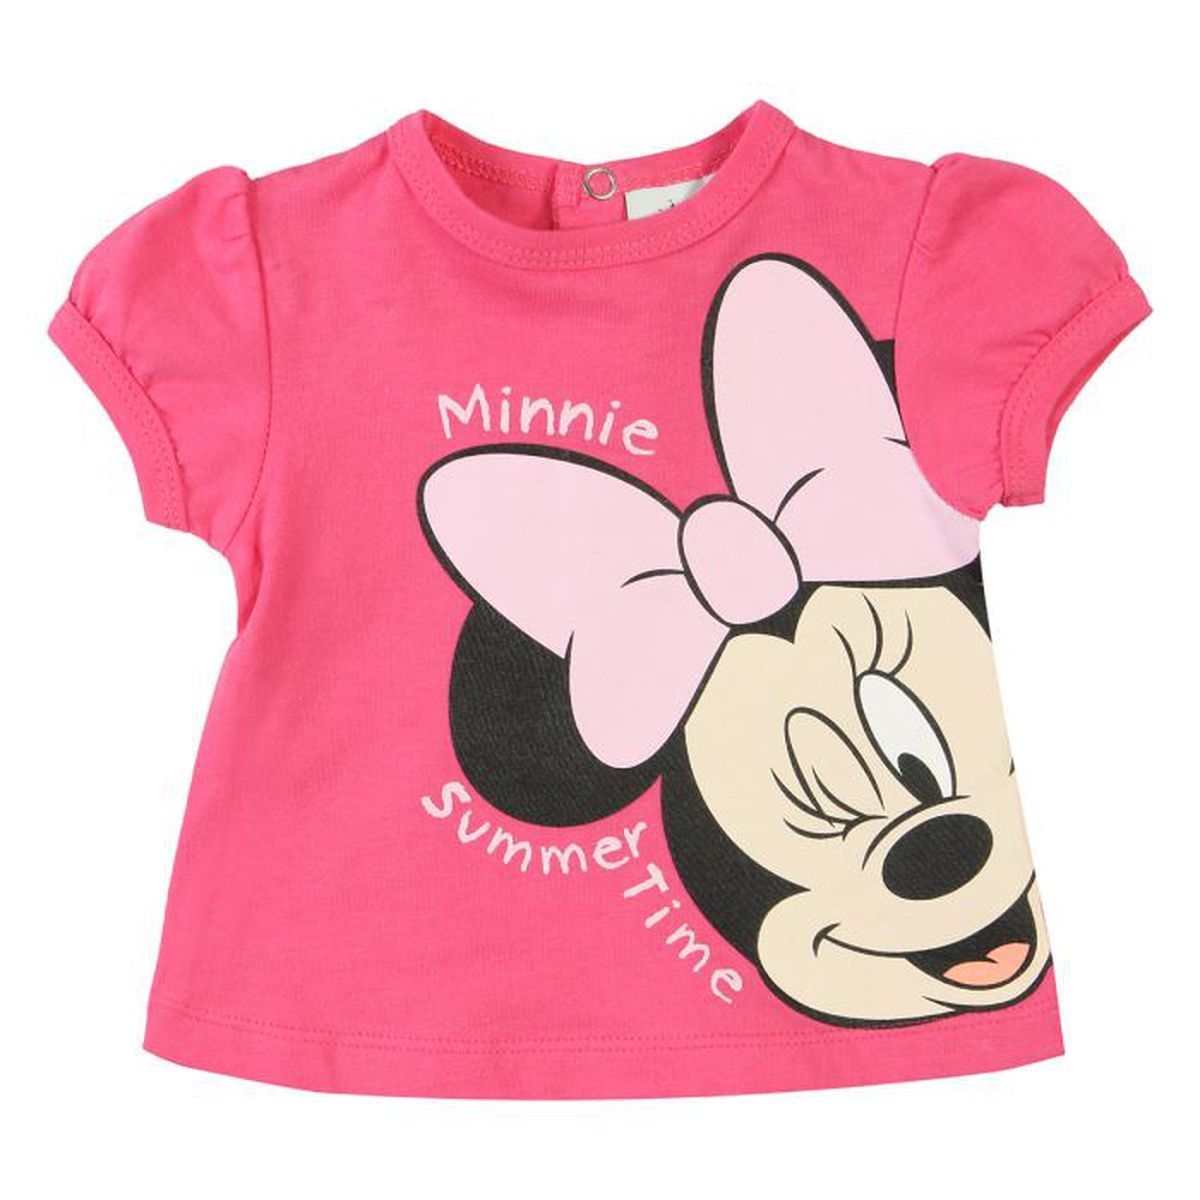 minnie t shirt b b fille fuschia achat vente t shirt cdiscount. Black Bedroom Furniture Sets. Home Design Ideas